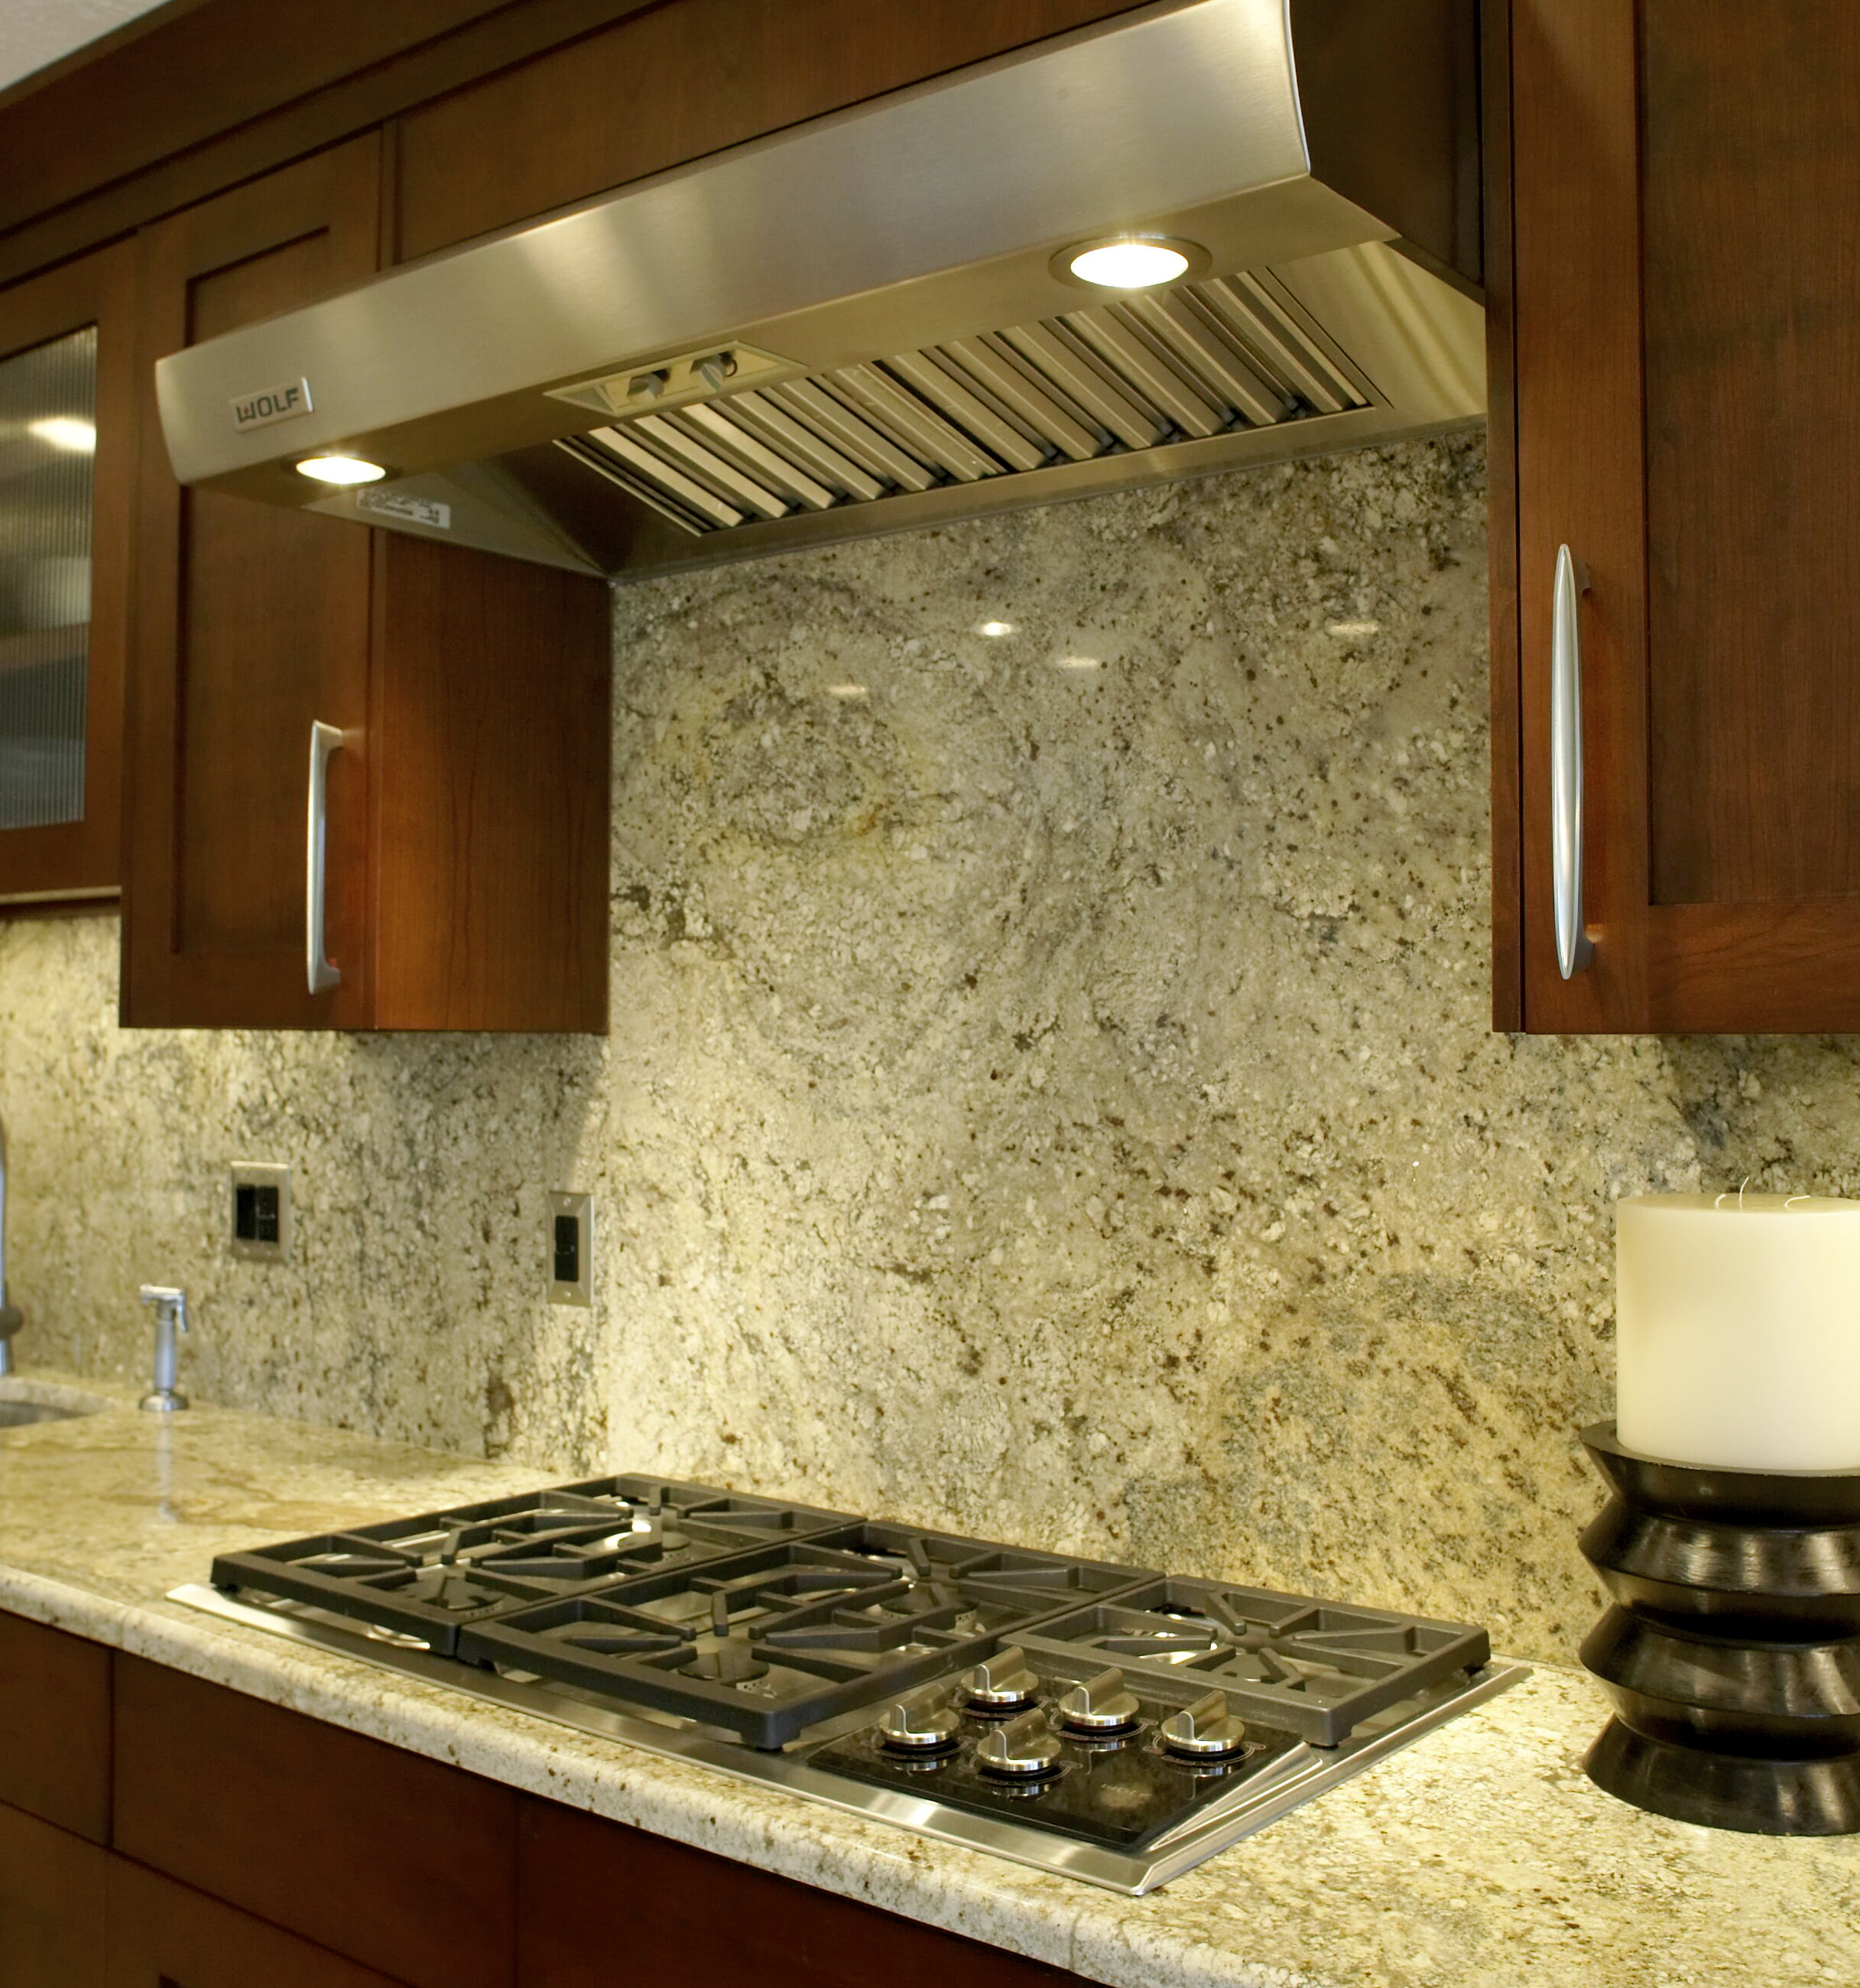 Kitchen Tiles Granite Are Backsplashes Important In A Kitchen Kitchen Details